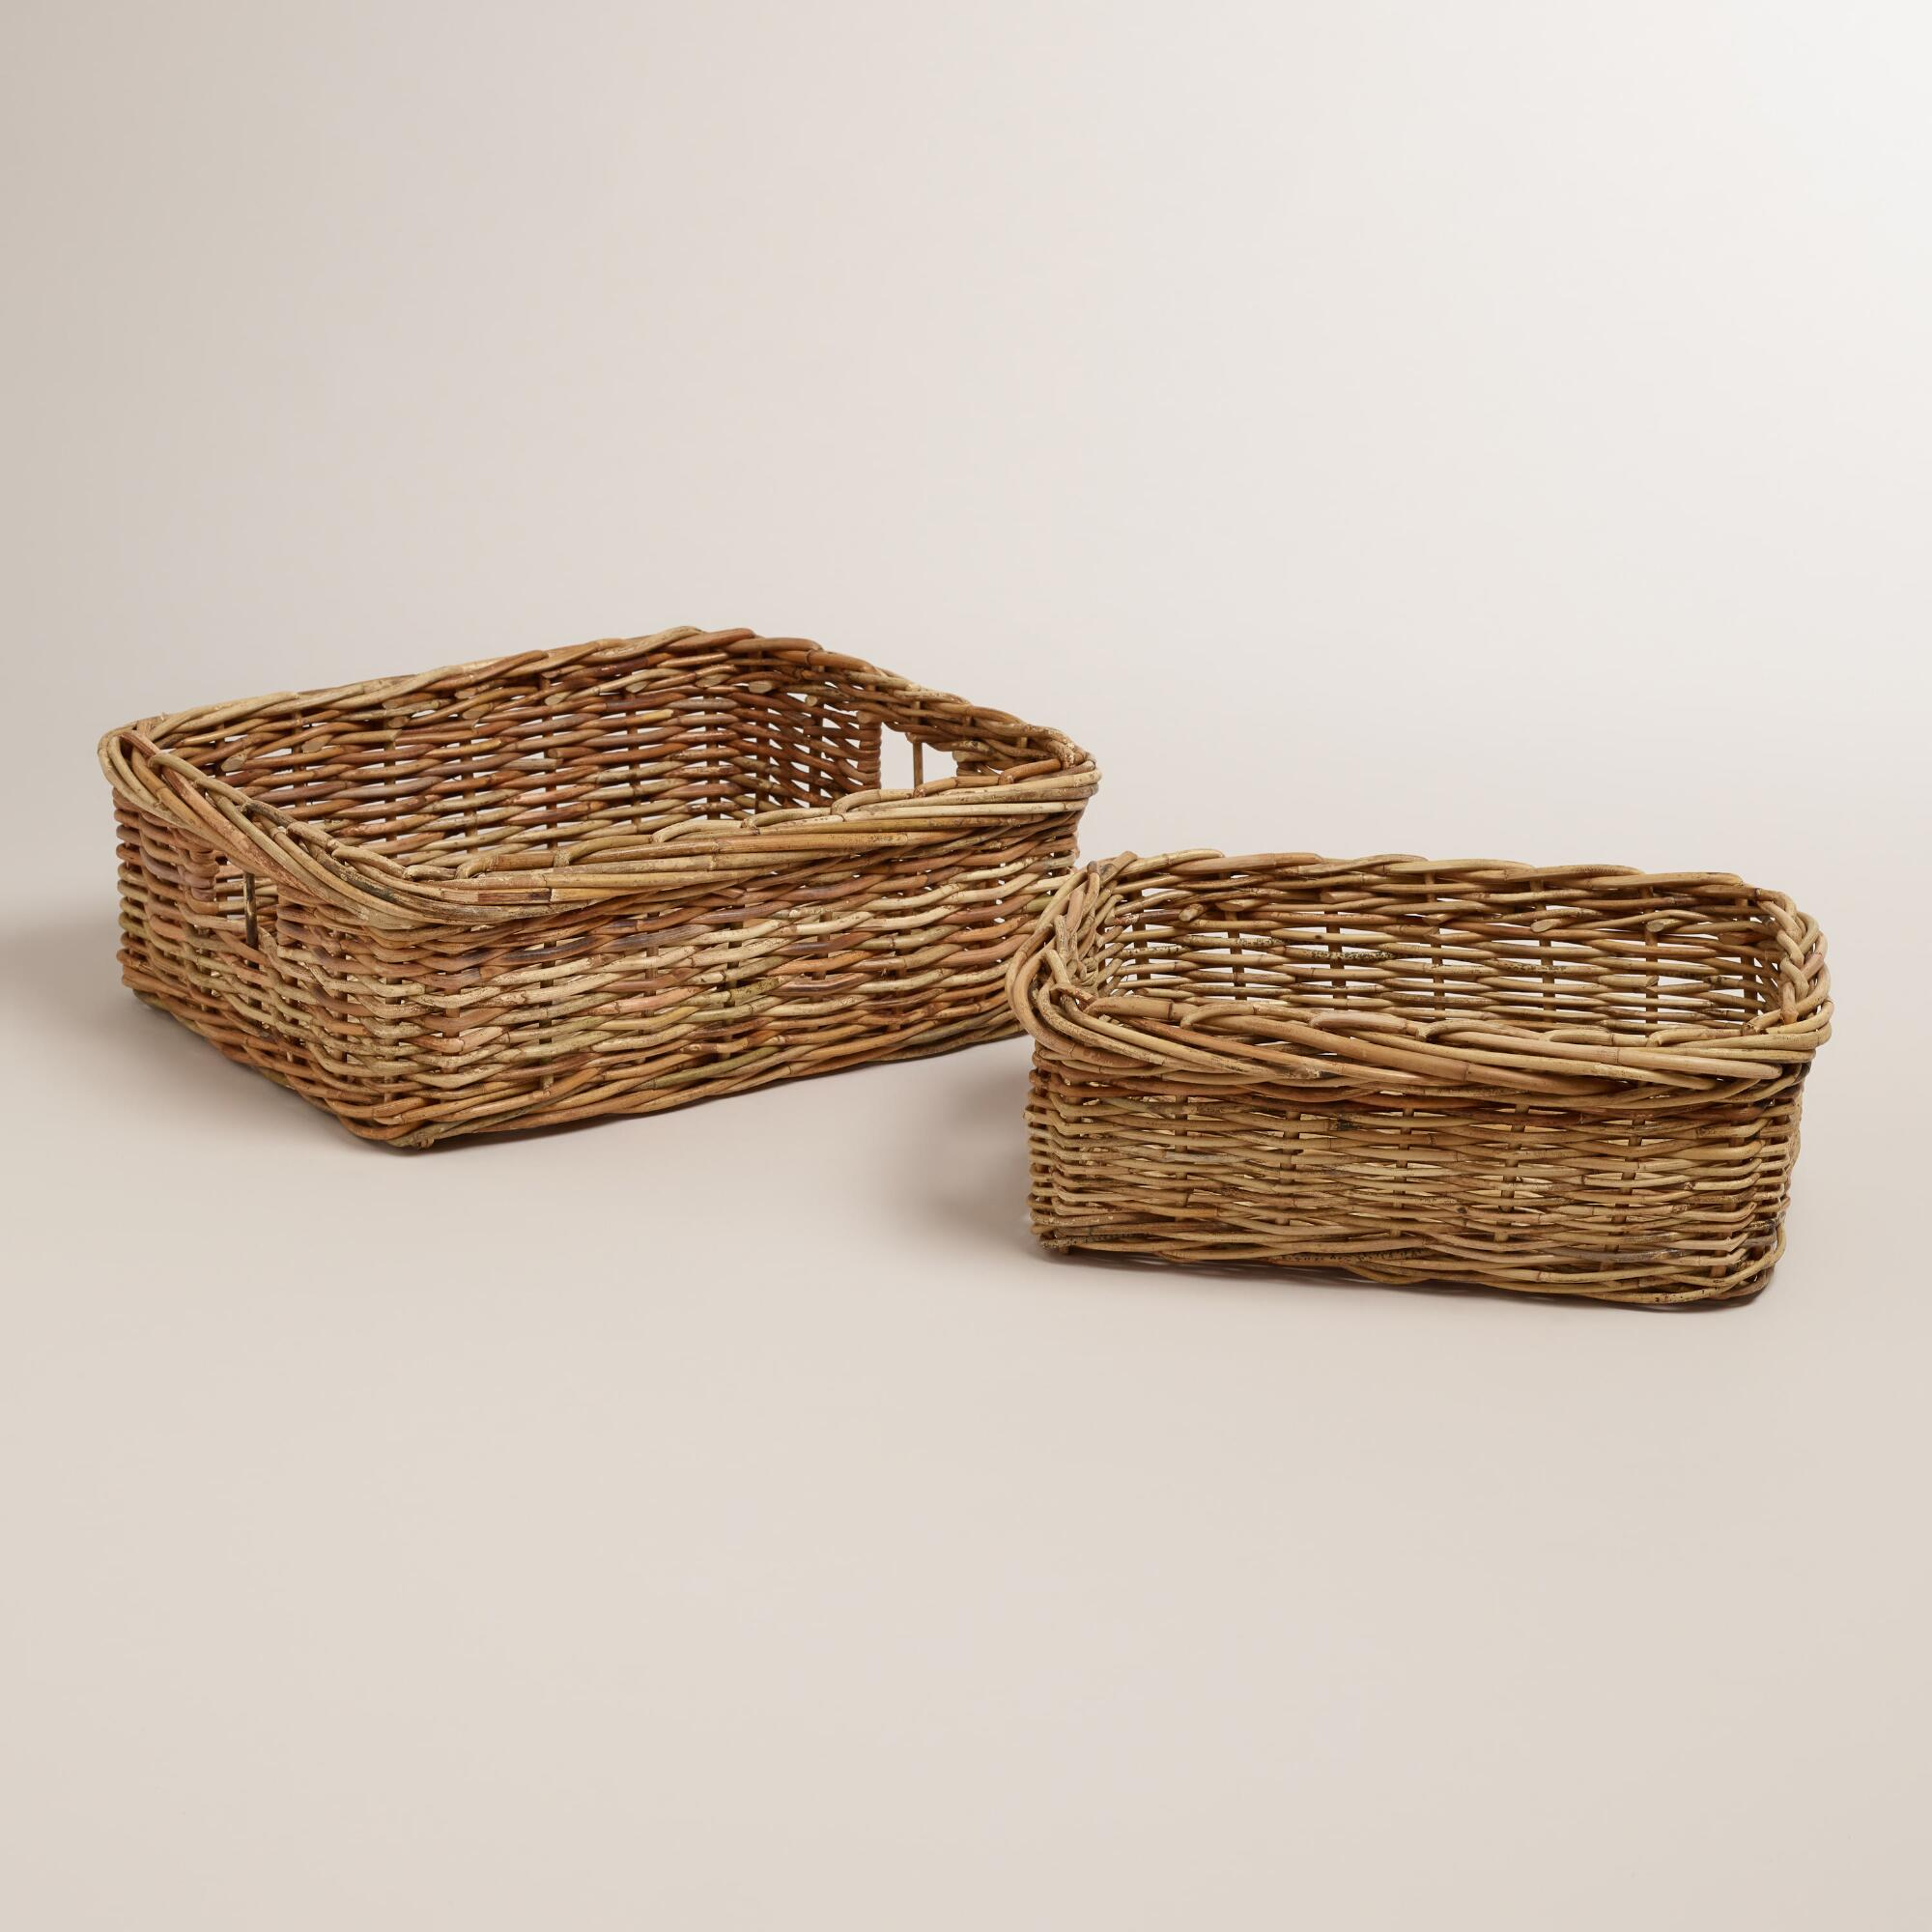 Roxie rattan baskets world market for Cane and wicker world